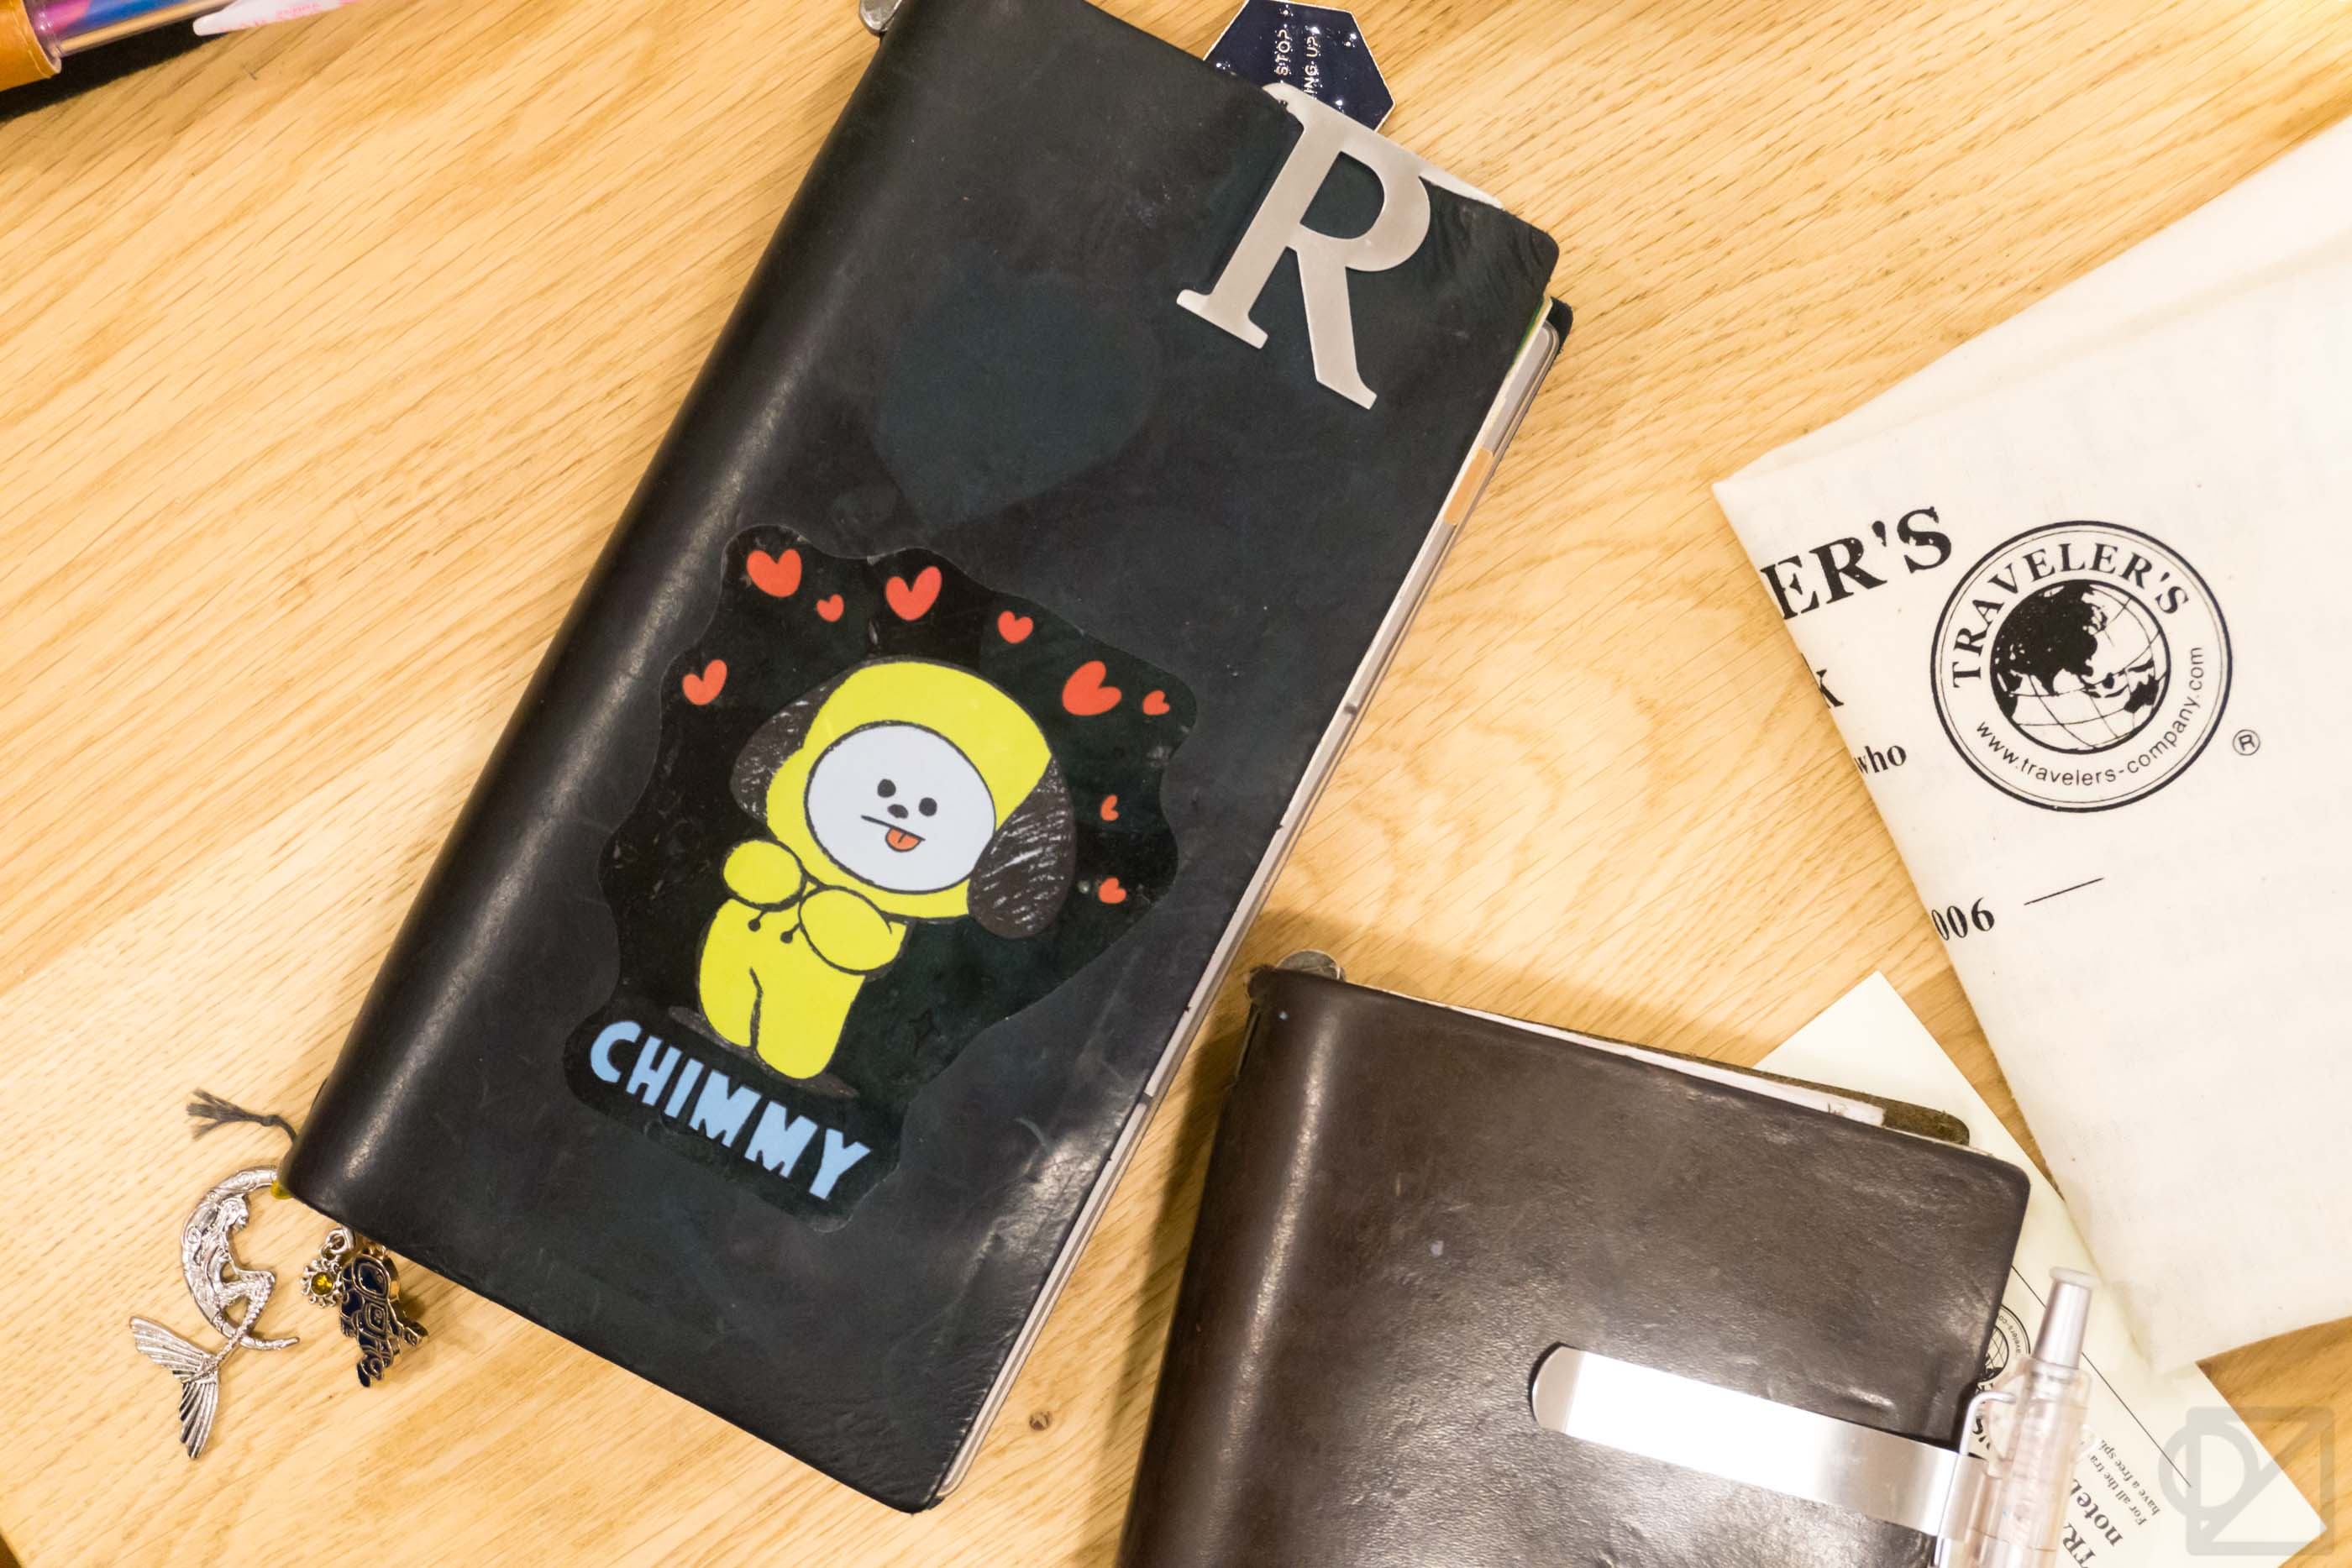 IG user @racqham's BTS centric journal has made an appearance at every meetup so far